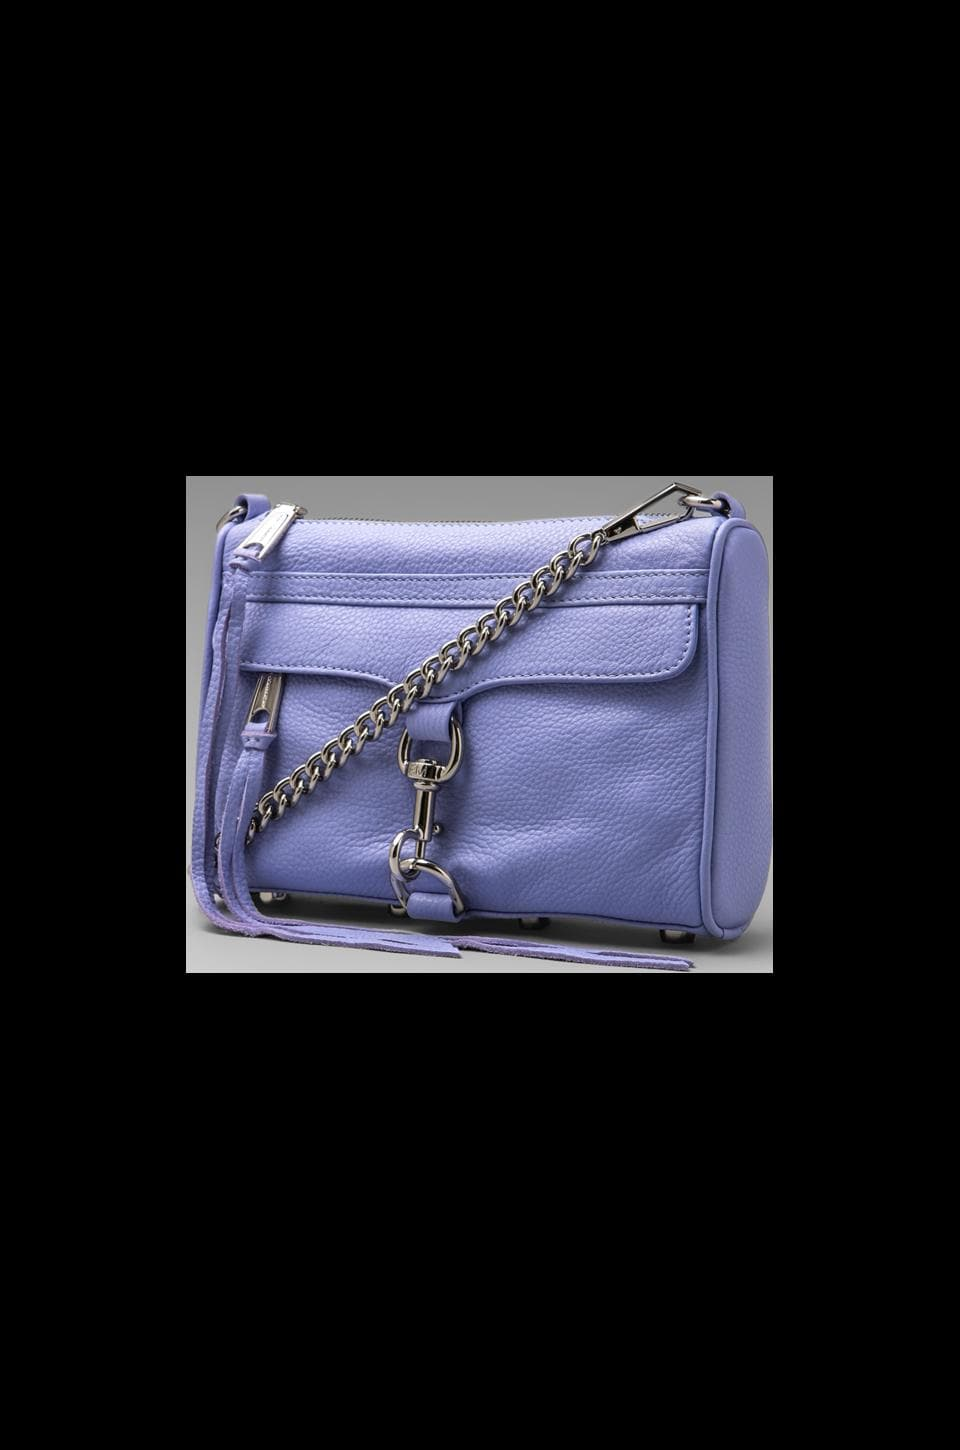 Rebecca Minkoff Mini Mac in Lilac